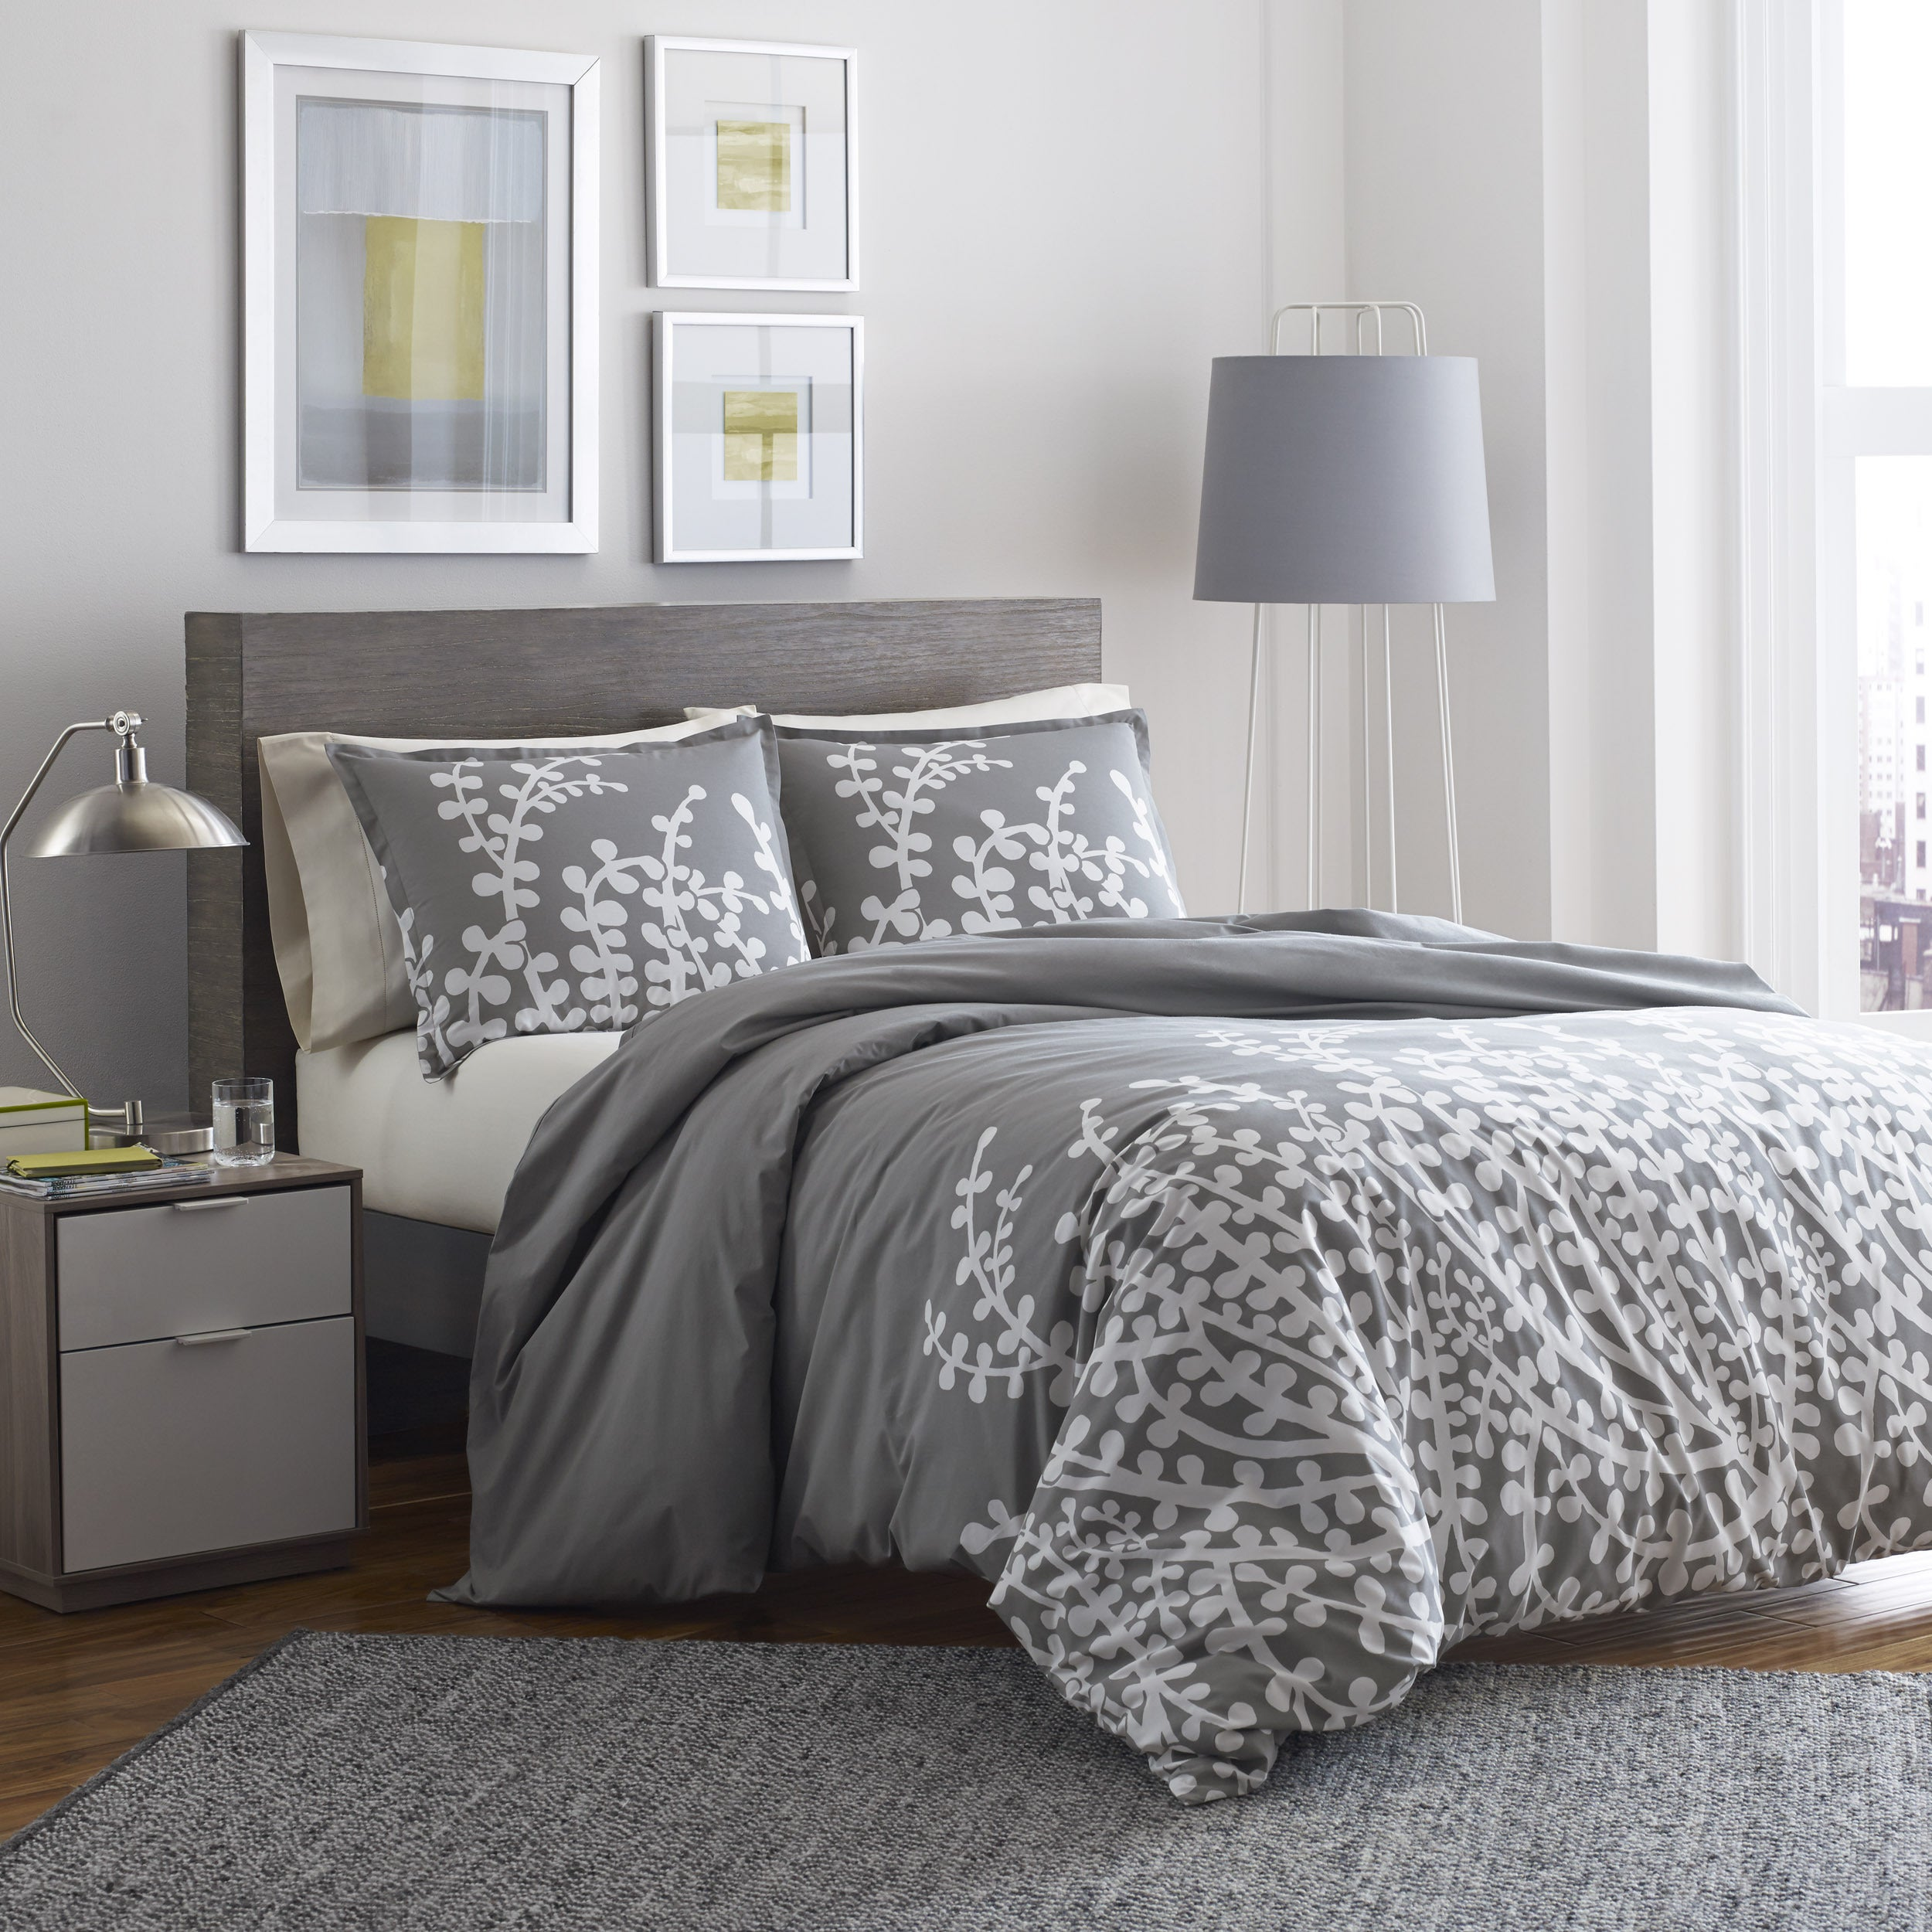 colors piece essence california madison p sizes piedmont king home park gray grey comforter set laurel